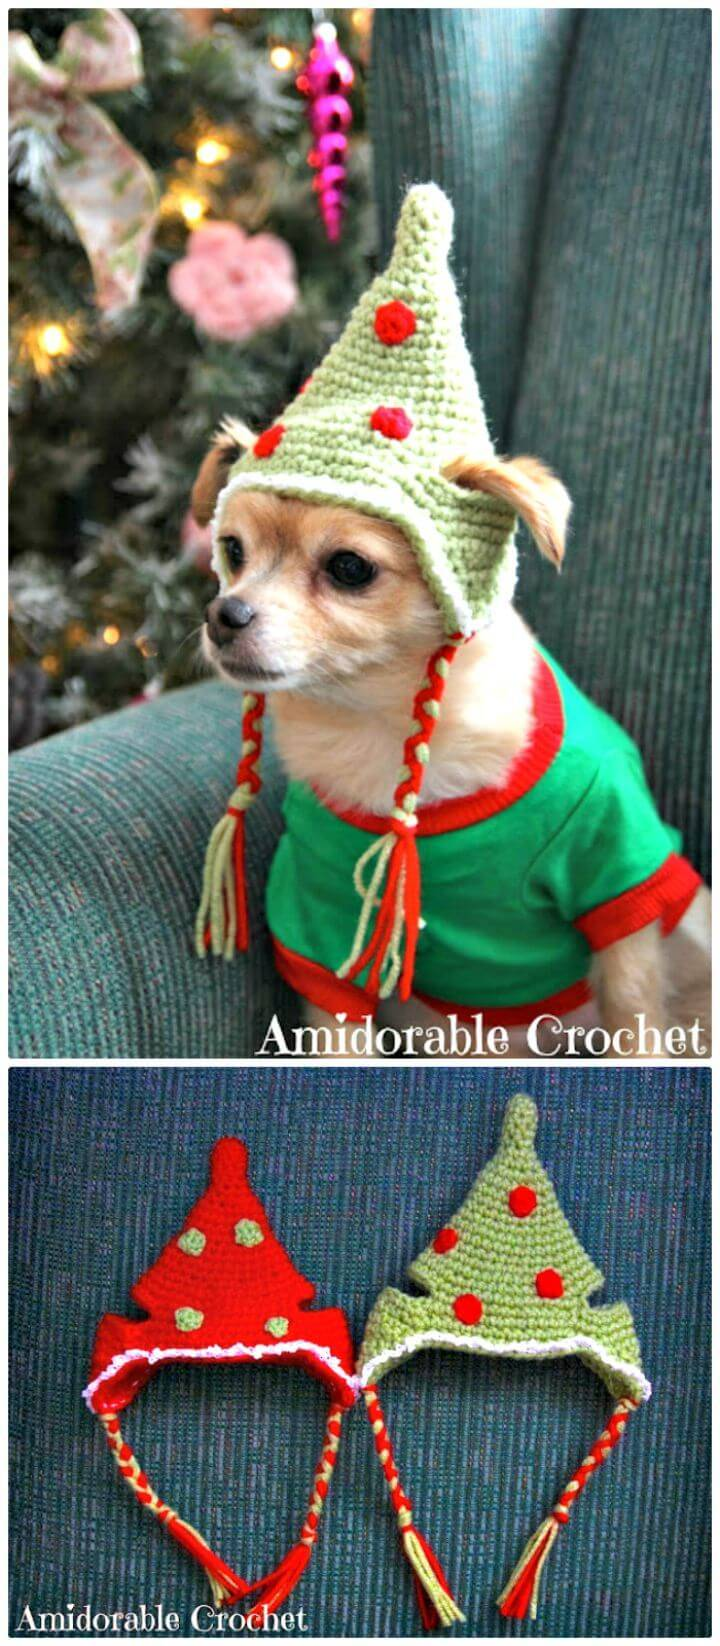 26 Free Crochet Patterns For Pets to Make Their Life Easier - DIY ...